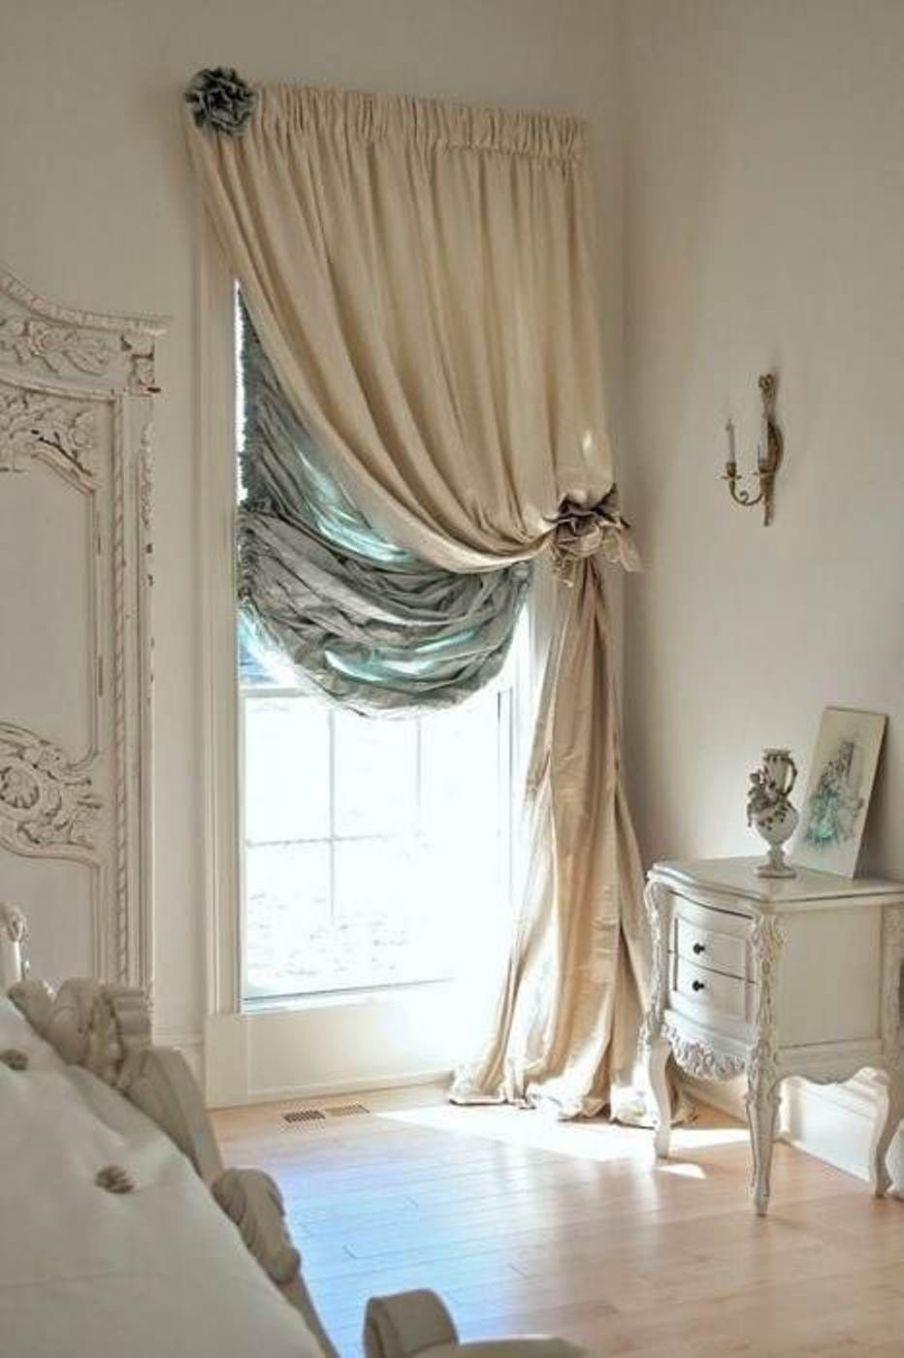 Bedroom Ideas With Curtains | Bedroom Decorating - bedroom ideas curtains